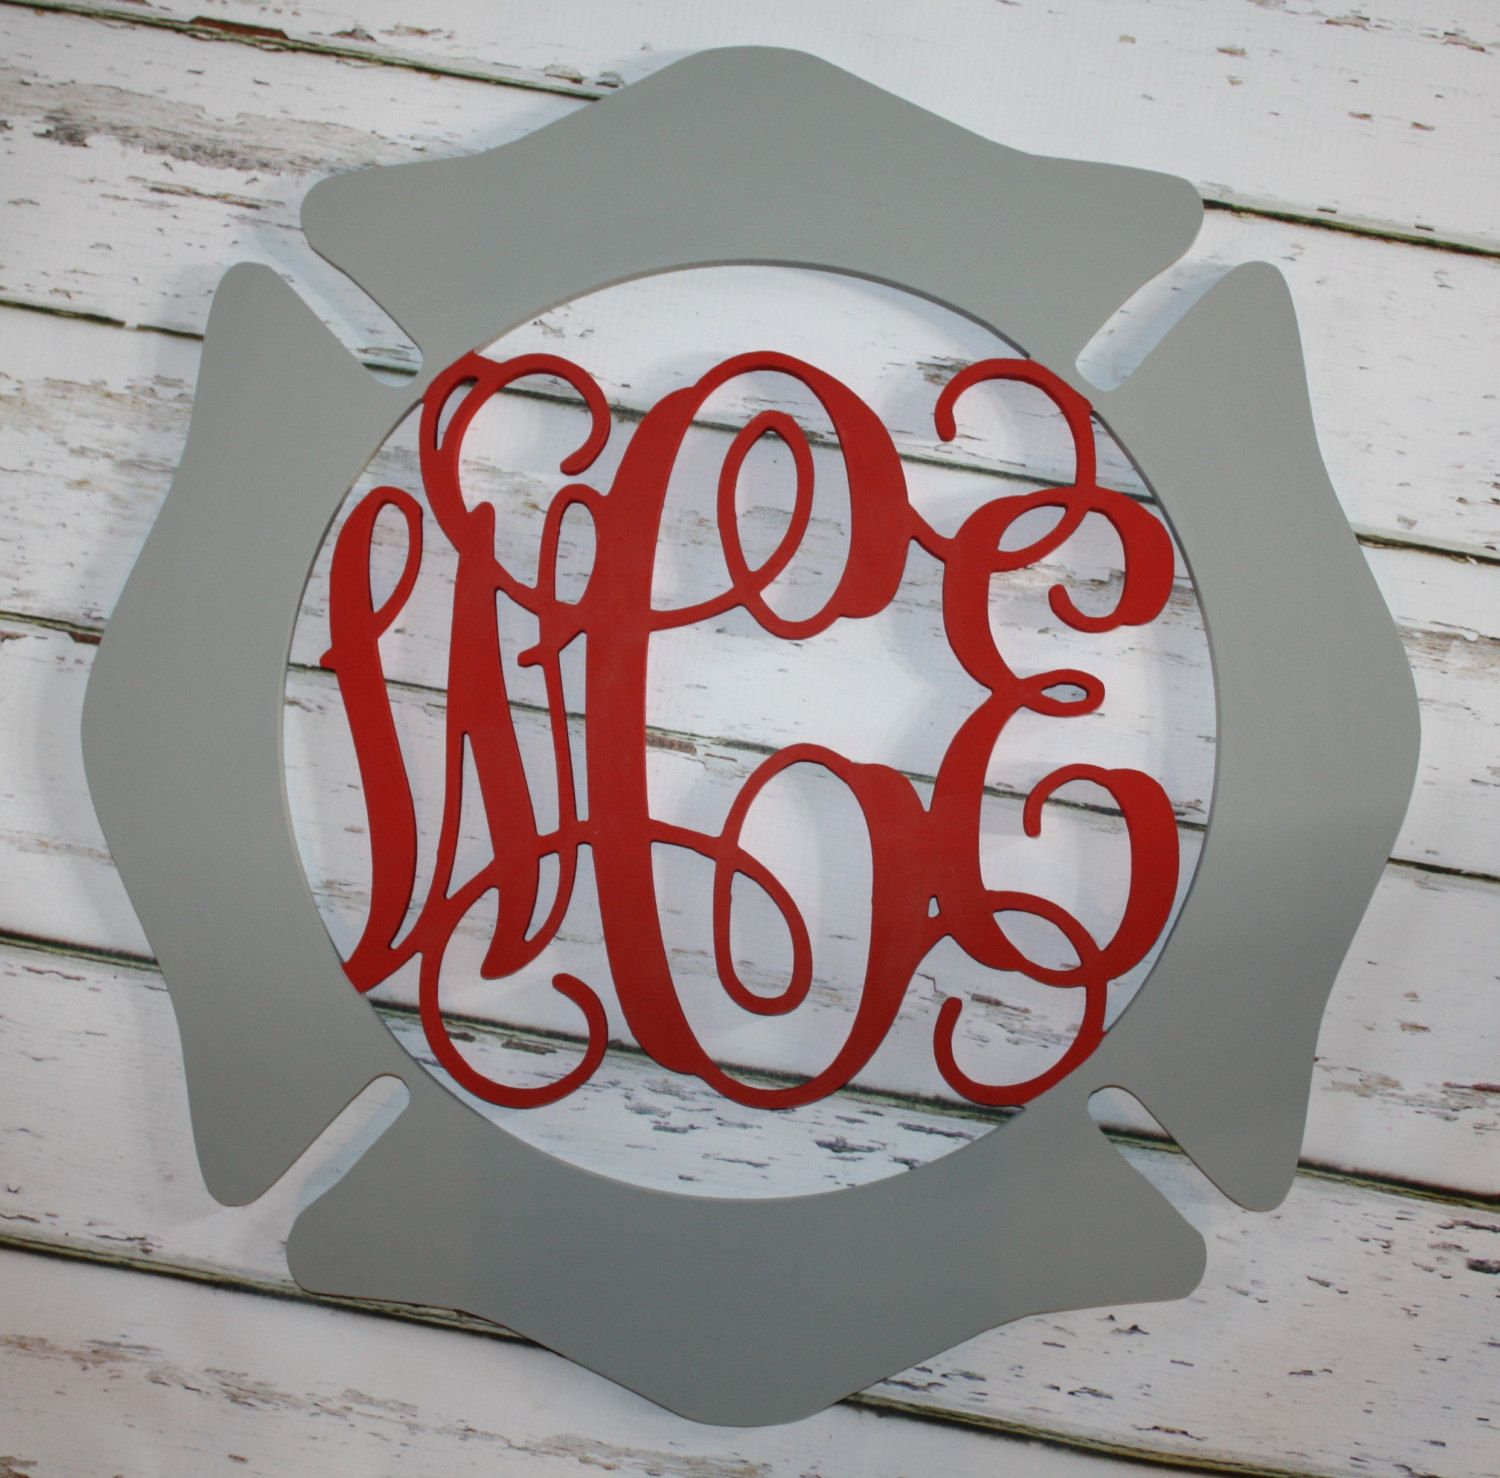 Firefighter Maltese Cross 18  3 letter script Monogram Door Hanging-Firefighter Gift Firefighter & Firefighter Maltese Cross 3 letter script Monogram Door Hanging ...